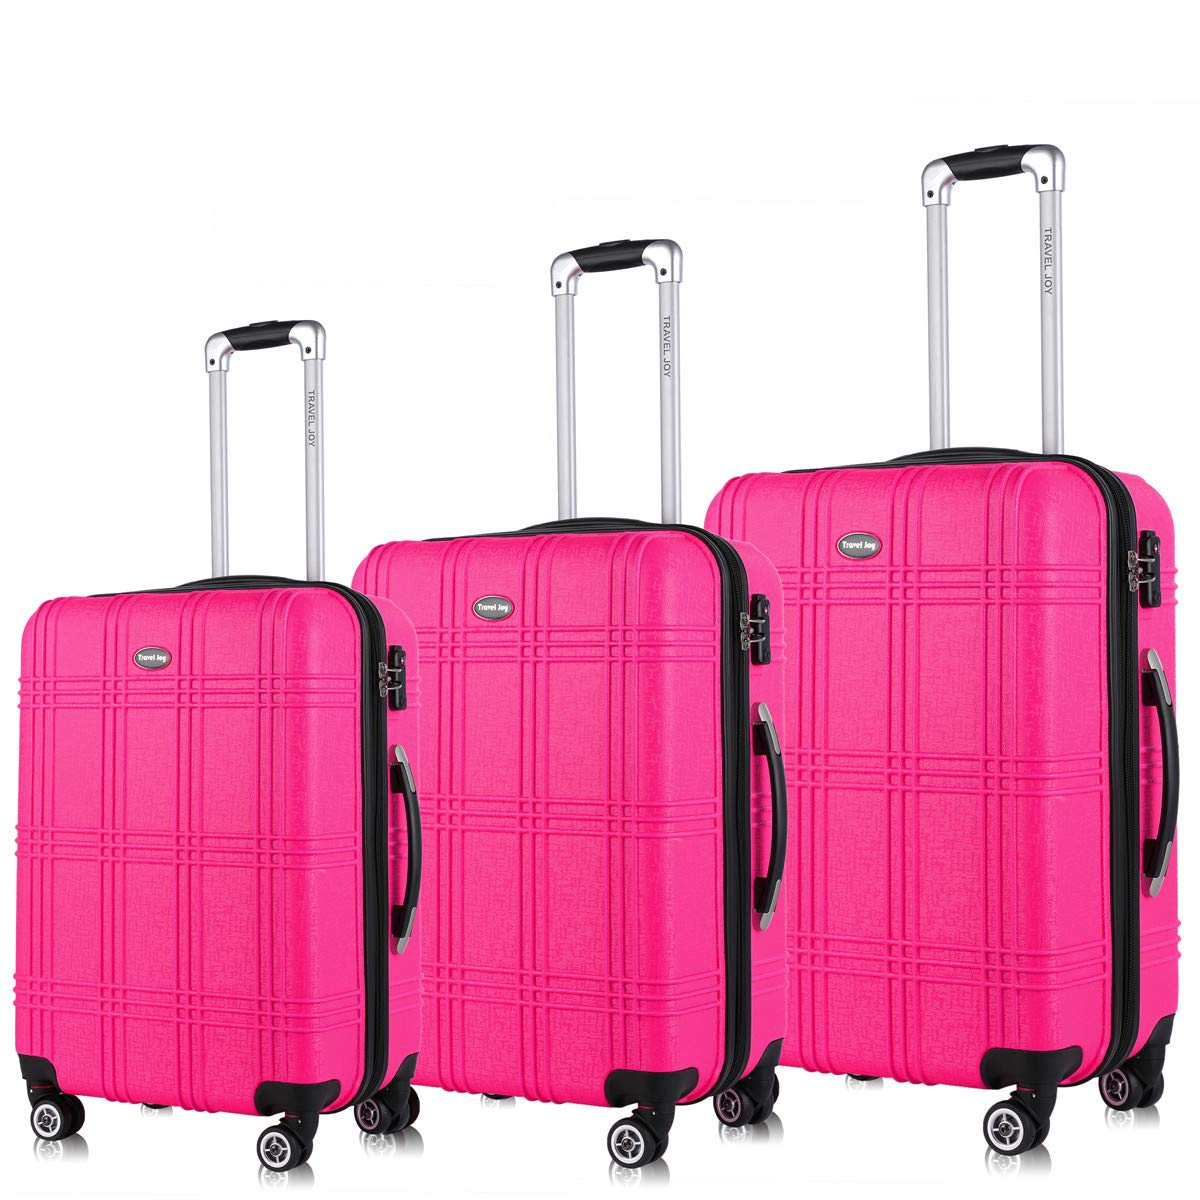 Expandable Spinner Luggage Set,TSA lightweight Hardside Luggage Sets, 20'' 24''28 inches Carry On Luggage (HOT PINK1, 3-piece)